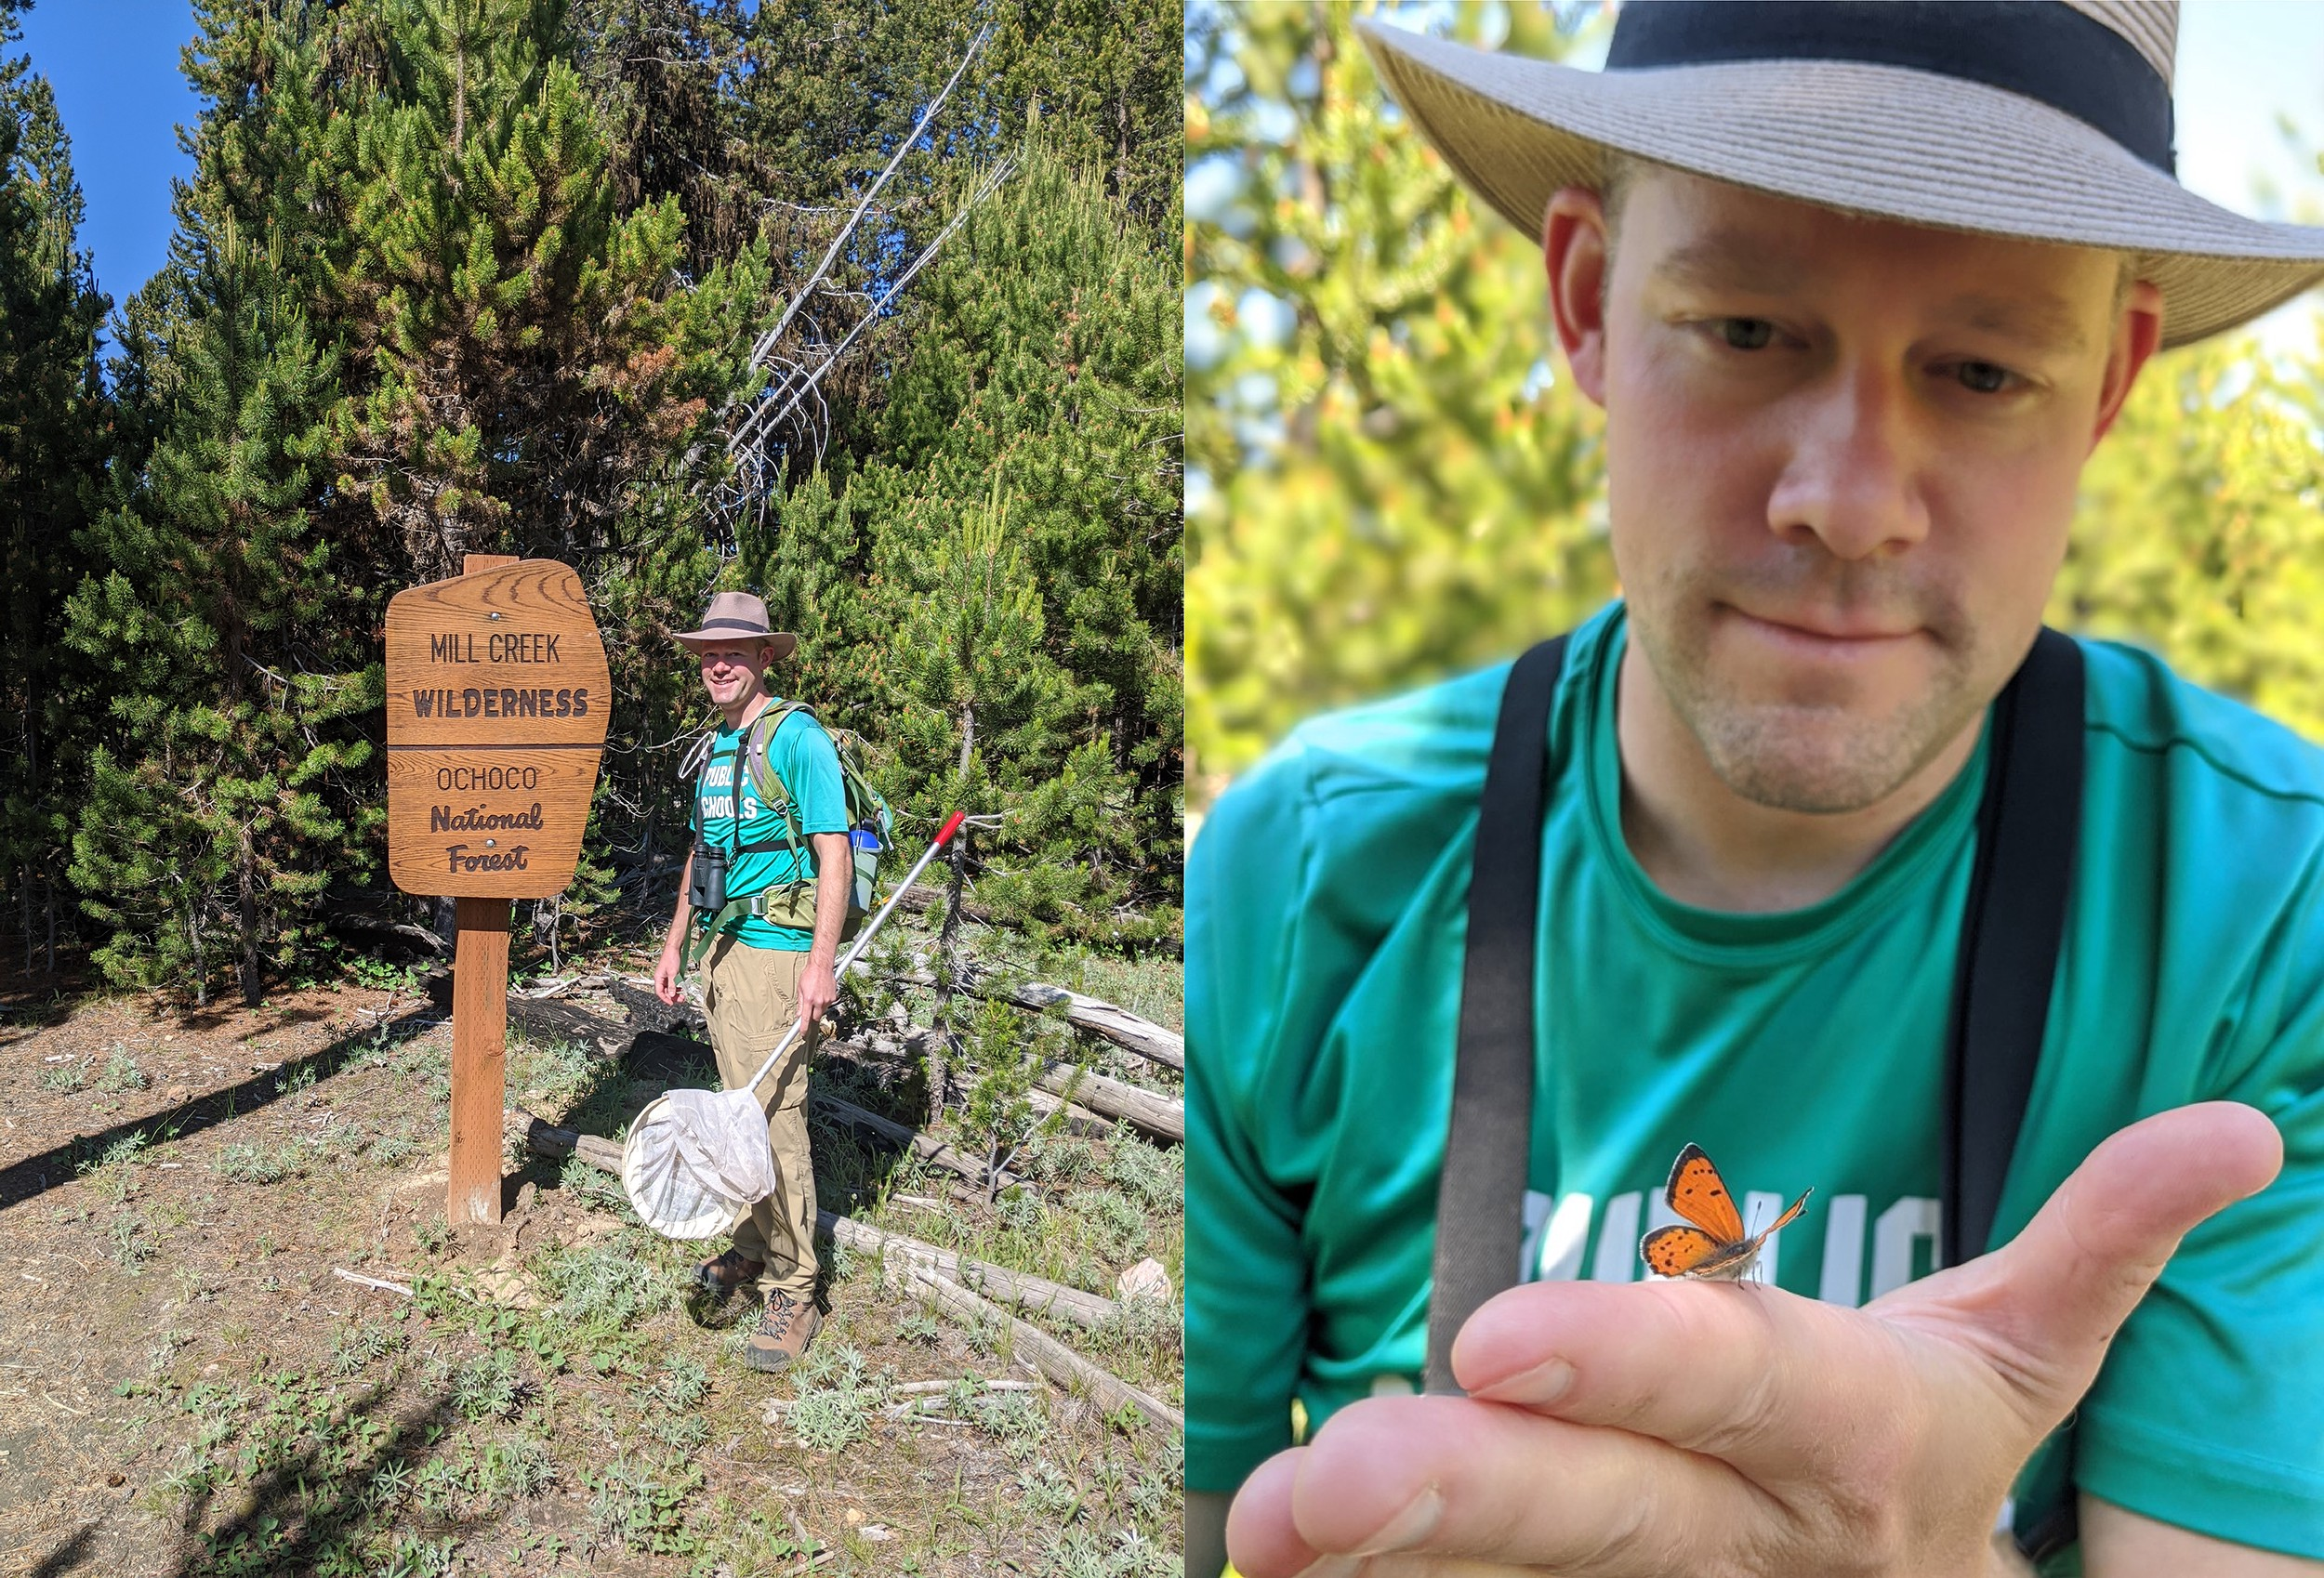 2 pics: One showing man with net next to sign; one shows him looking at small orange butterfly on hand